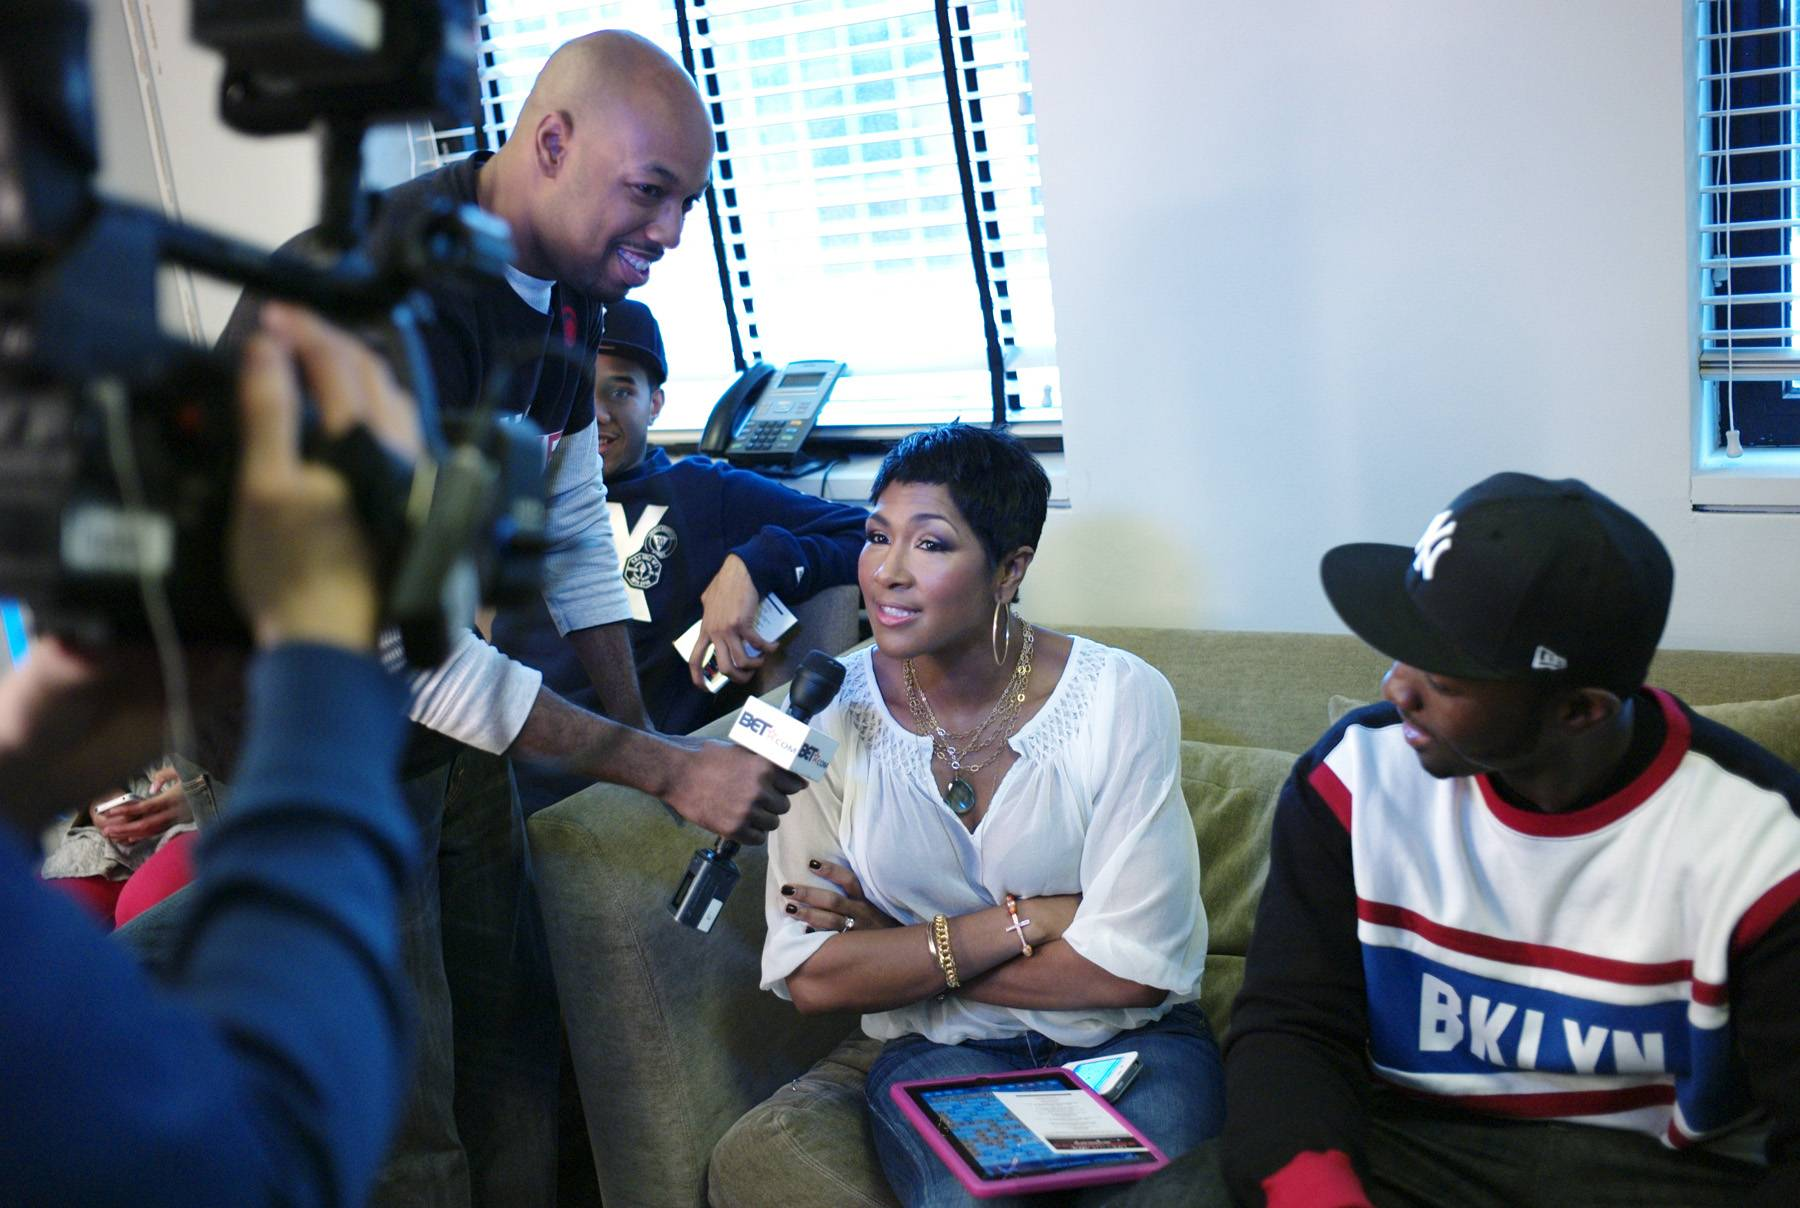 """I See You - Director of""""Life, Love, Soul"""" interviews Terri Vaughn and Jamie Hector in the green room at 106 & Park, April 12, 2012. (Photo: John Ricard / BET)"""